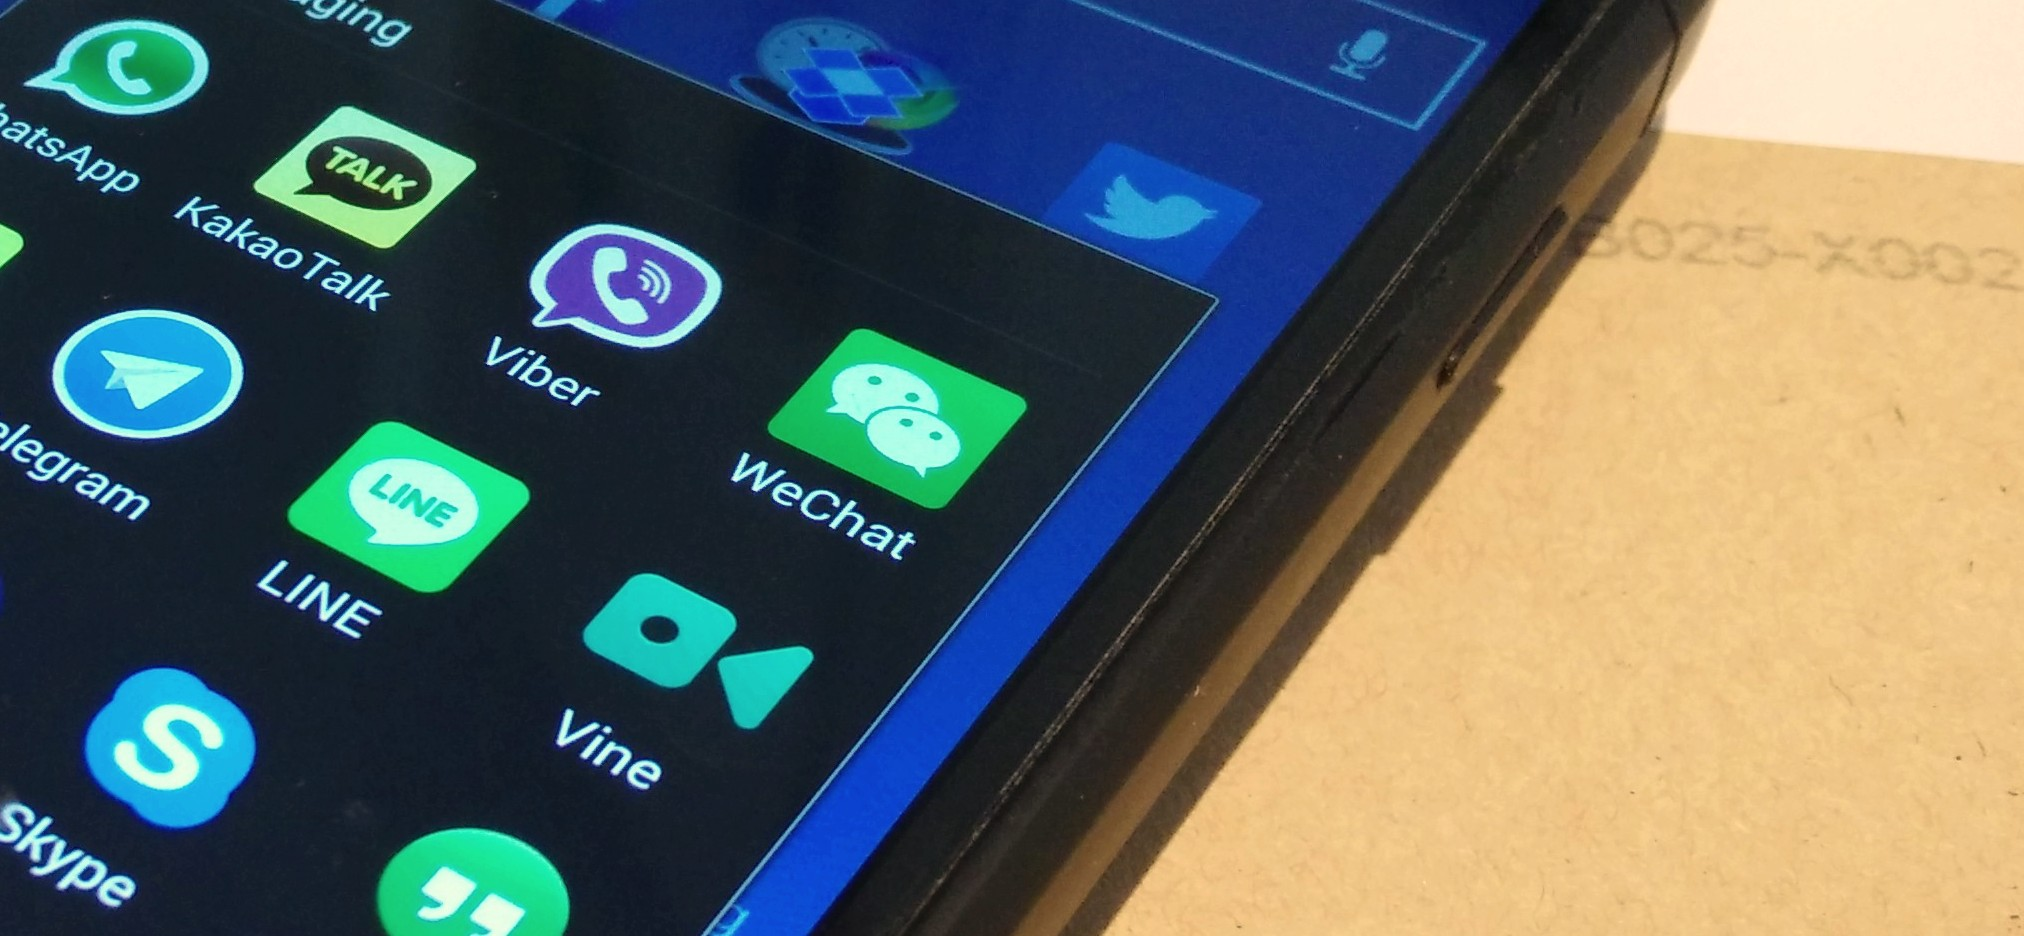 The Convergence of Mobile Messaging Apps